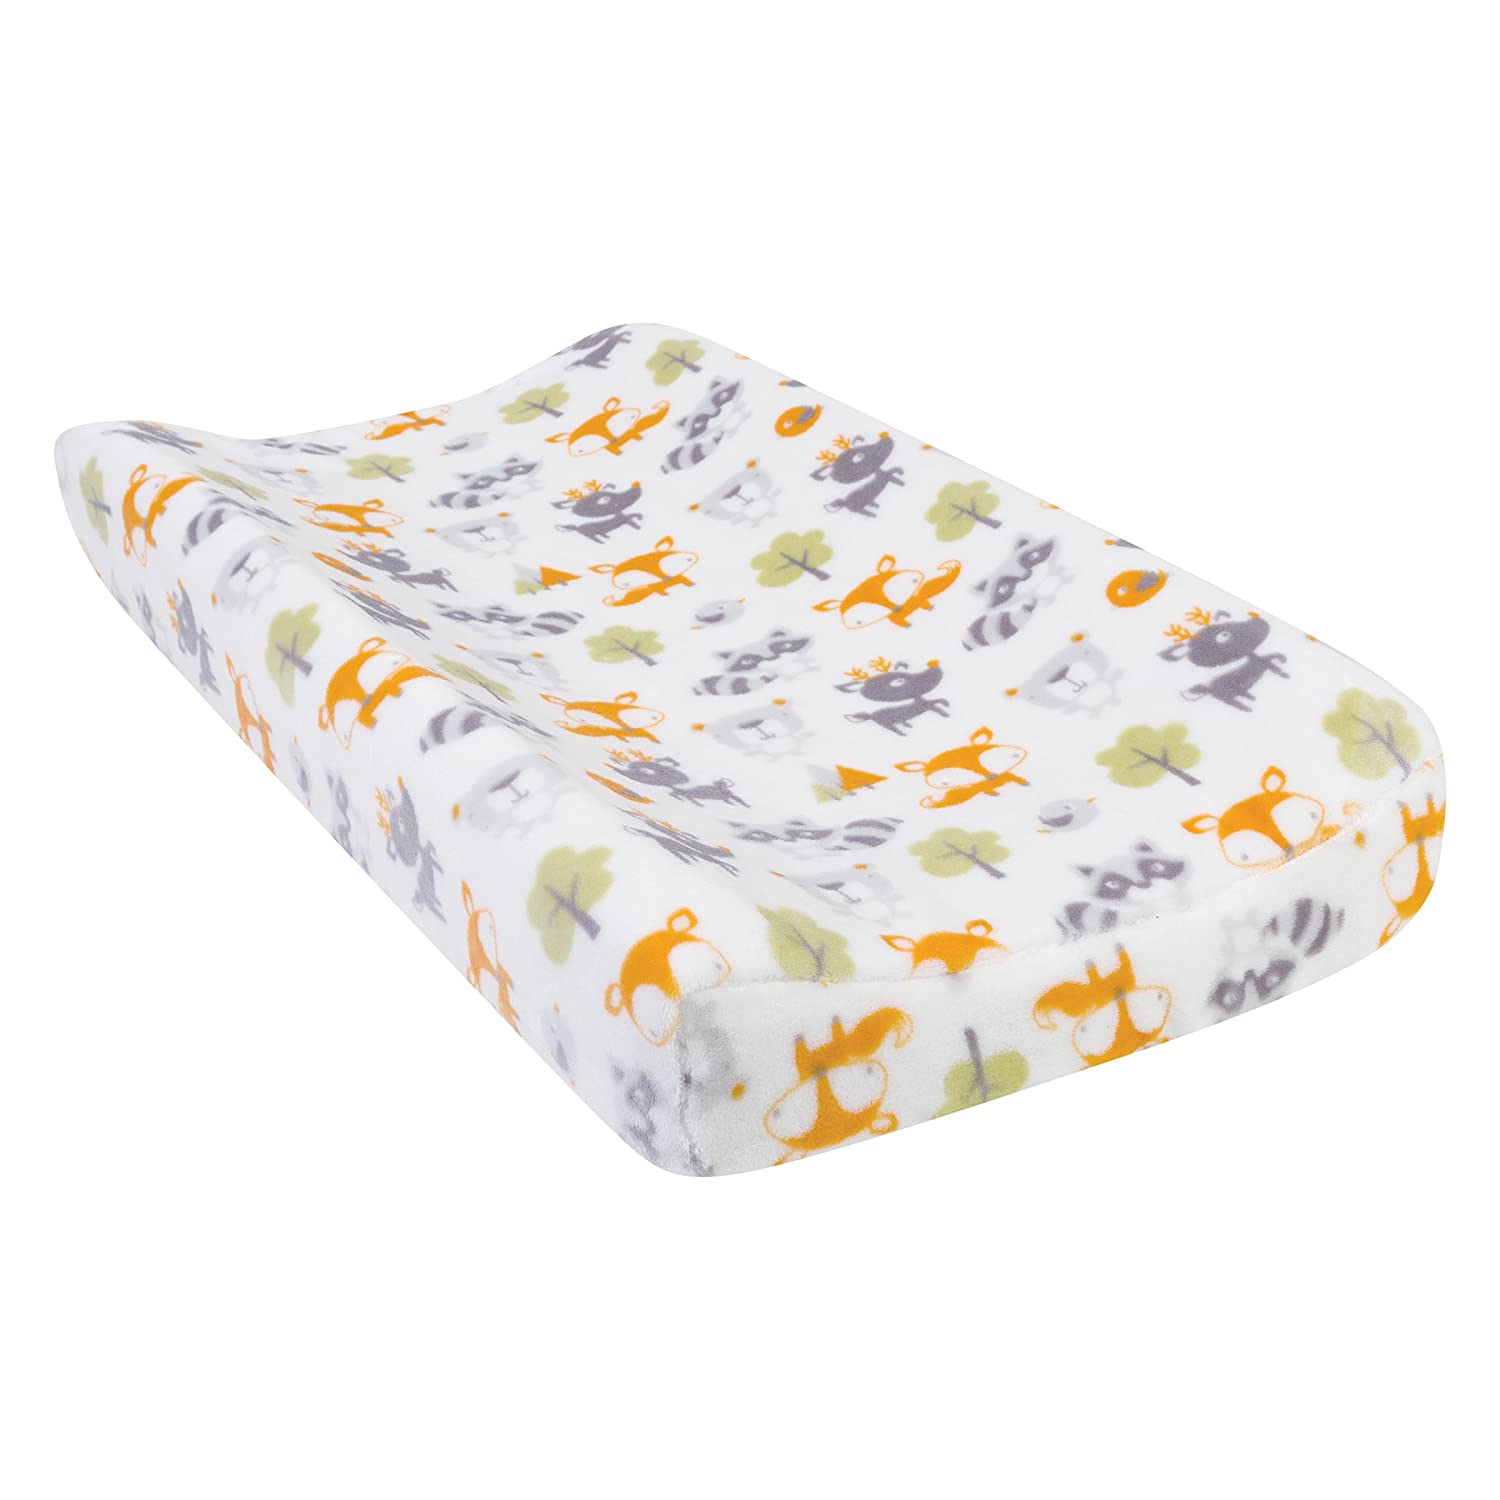 Trend Lab Plush Changing Pad Cover, Multi Dr. Seuss Friends 30633